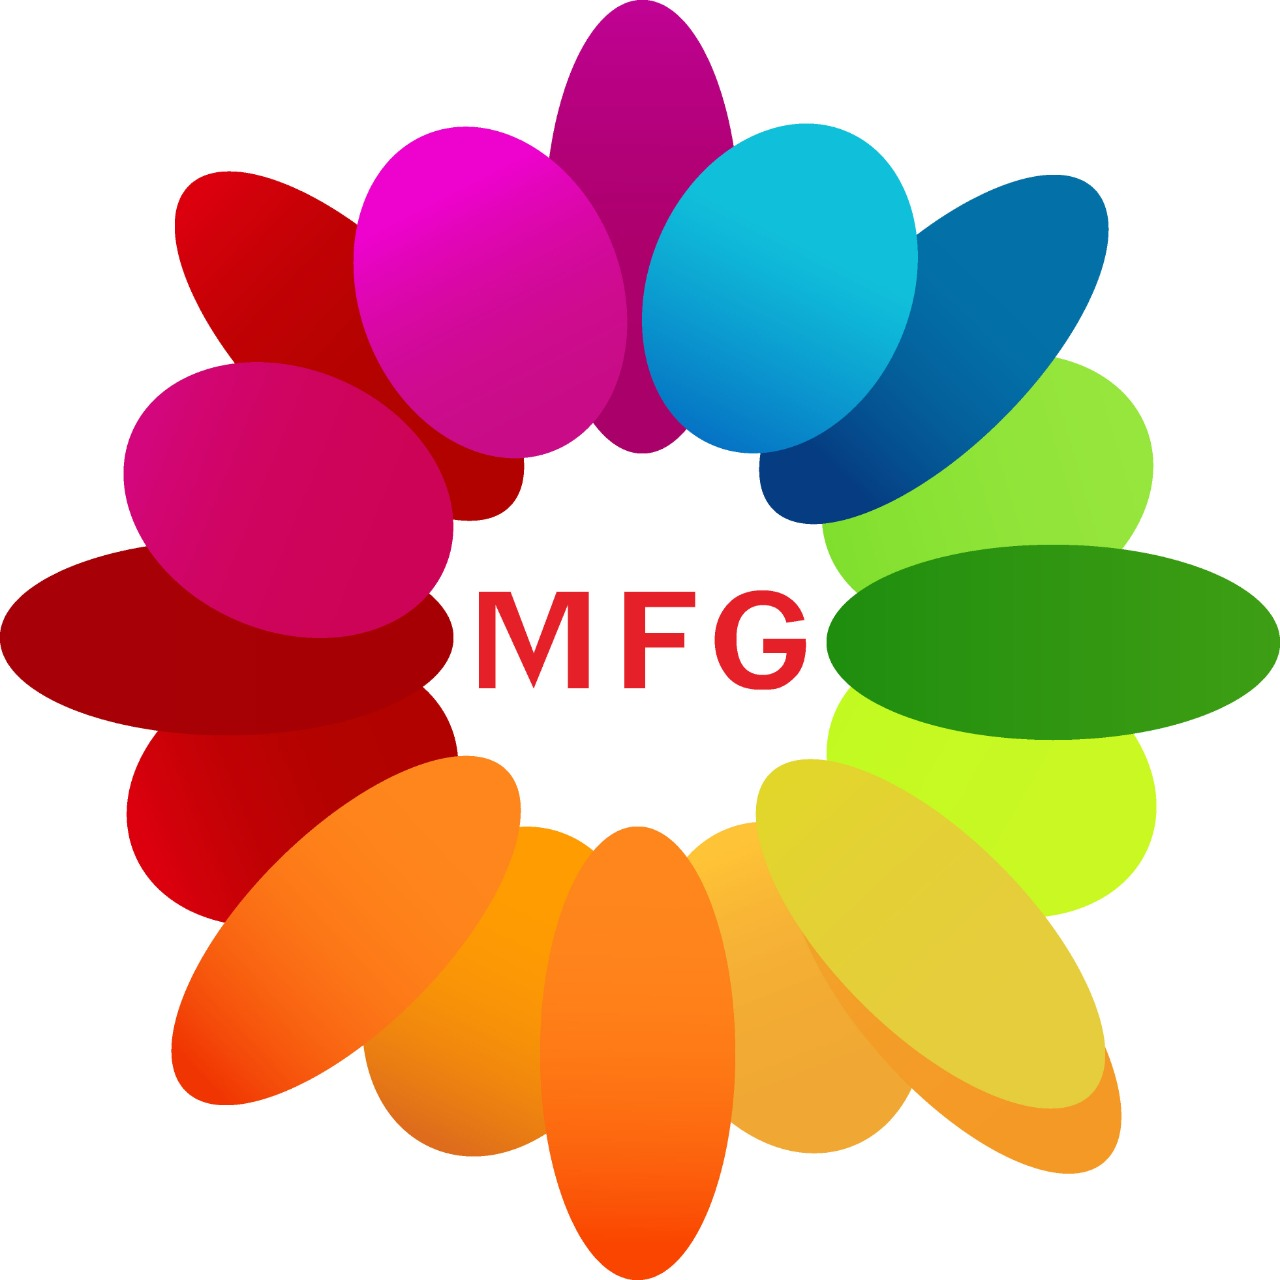 Bunch of 10 red roses, dairy milk, 2 five star, greeting card, 6 inch white teddy bear